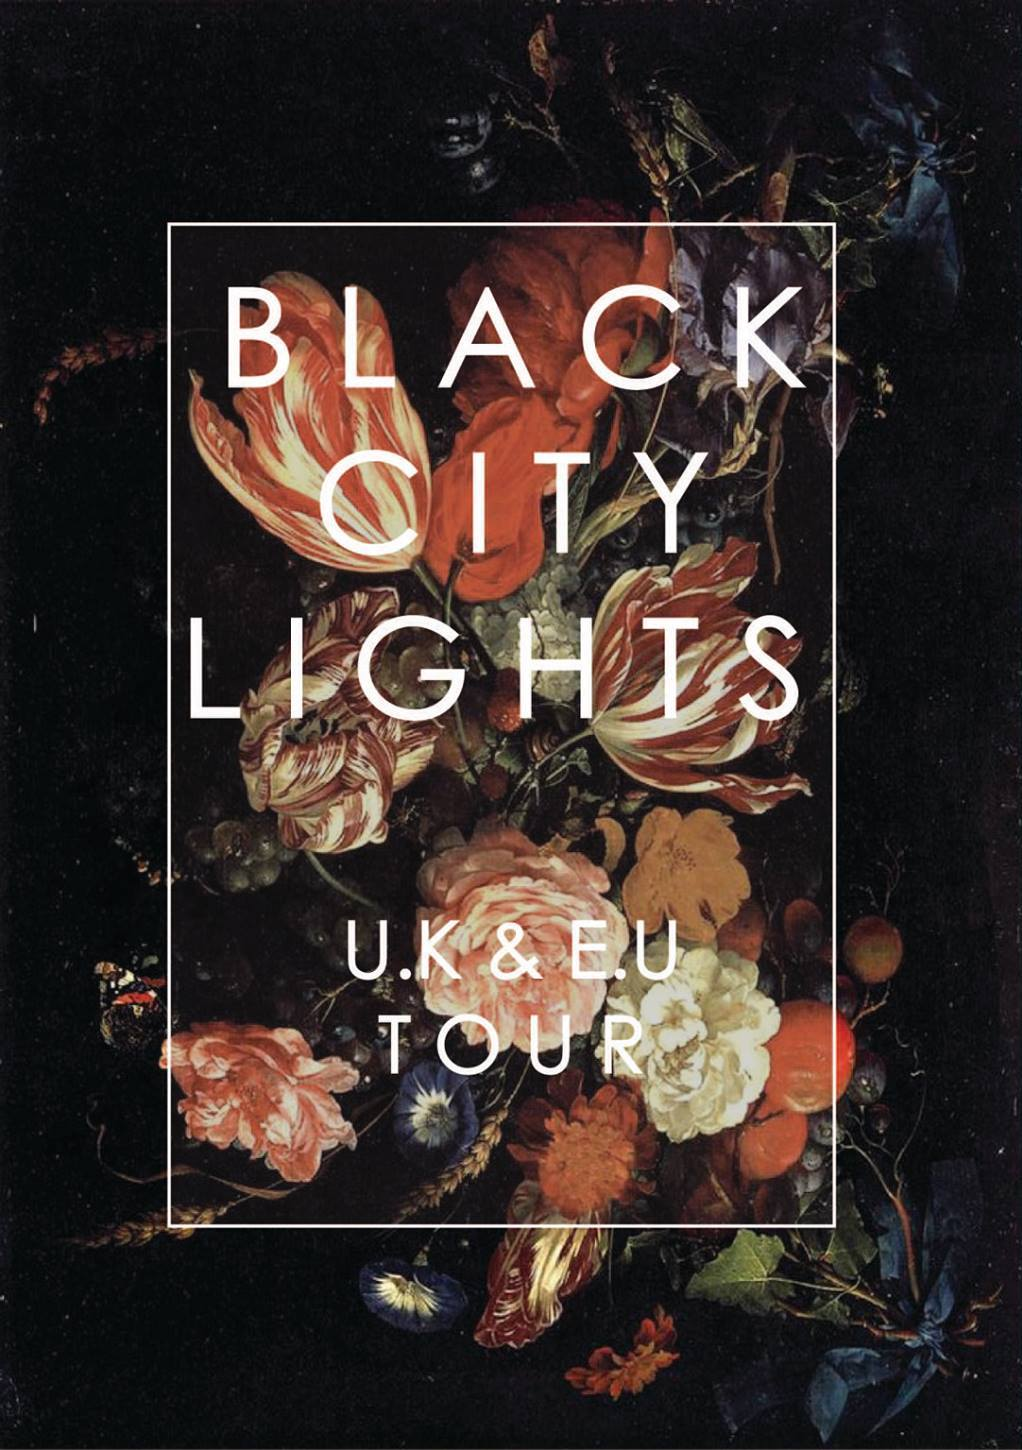 Black City Lights - UK & EU Tour